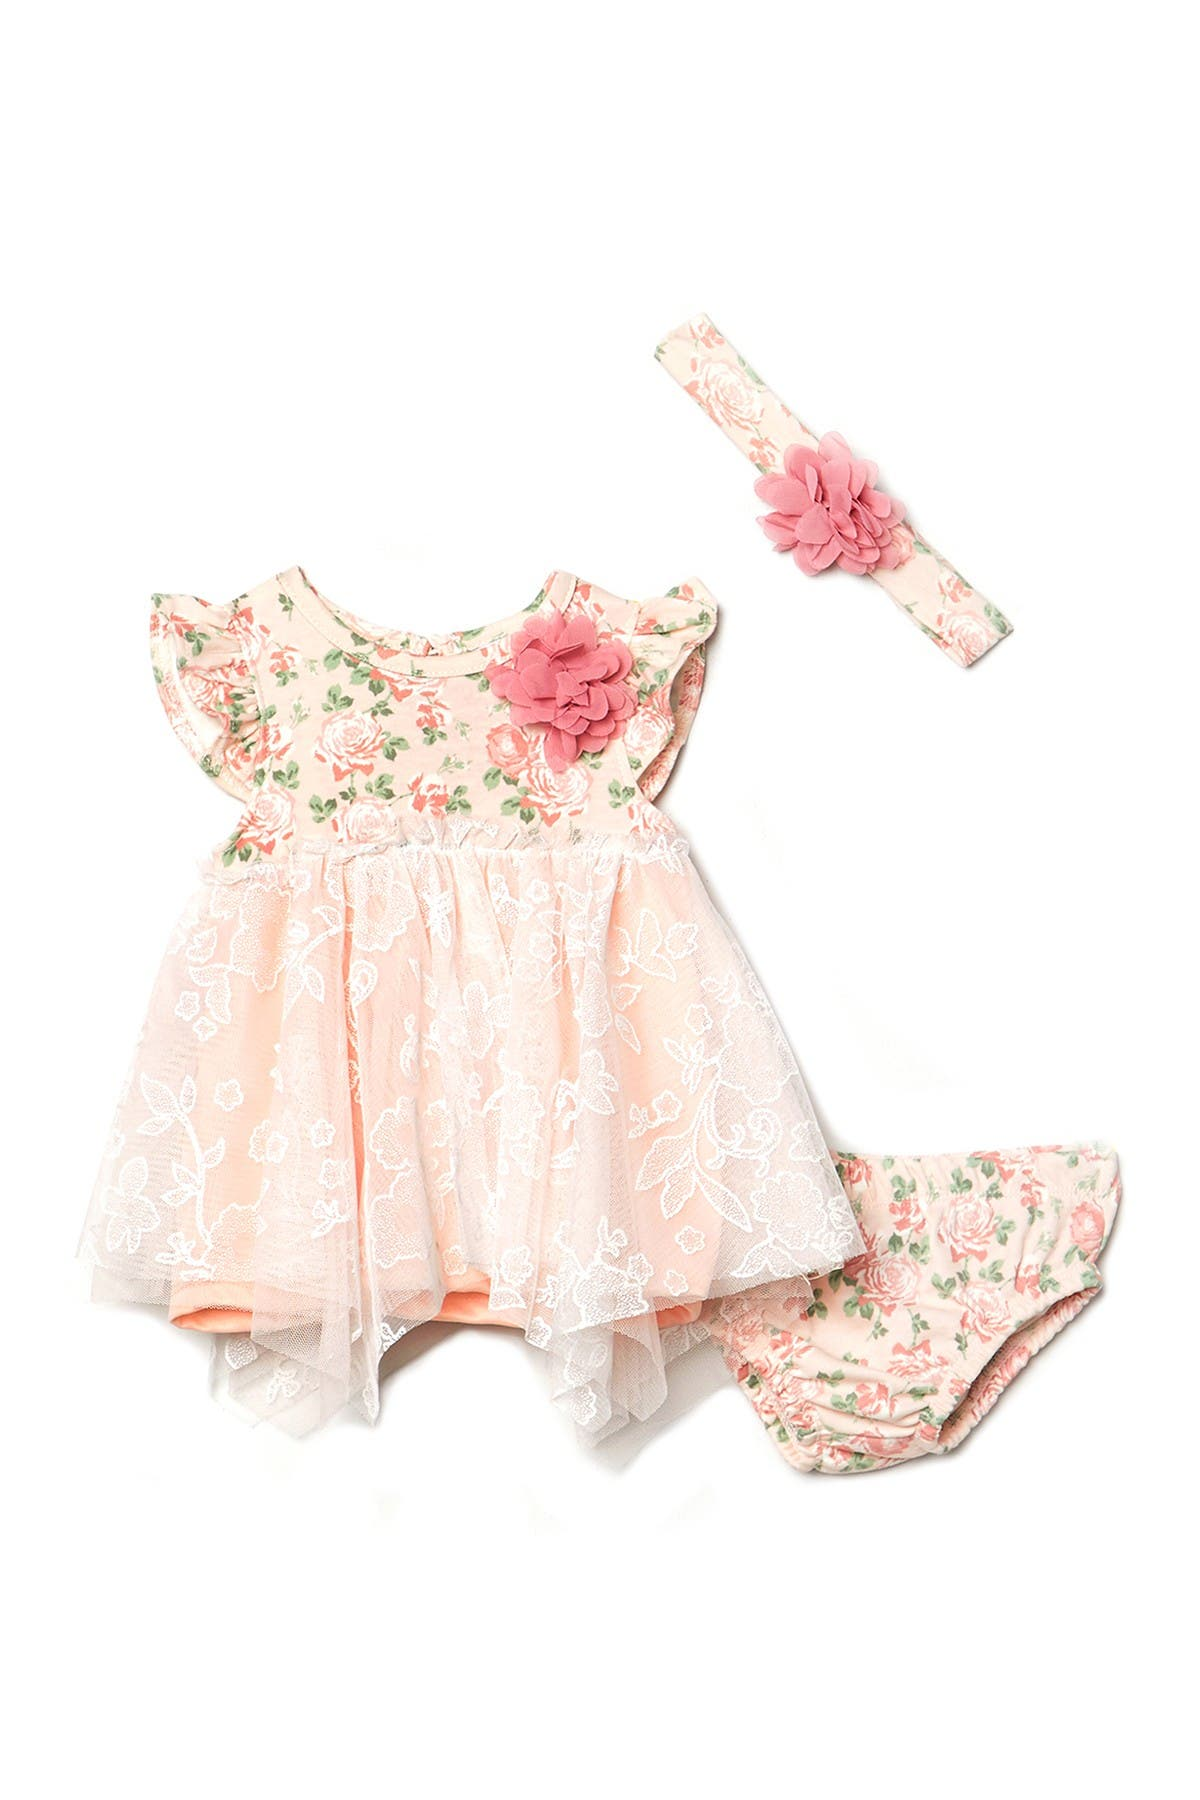 Image of Nicole Miller Lace & Floral Handkerchief Dress, Headband, & Bloomers Set